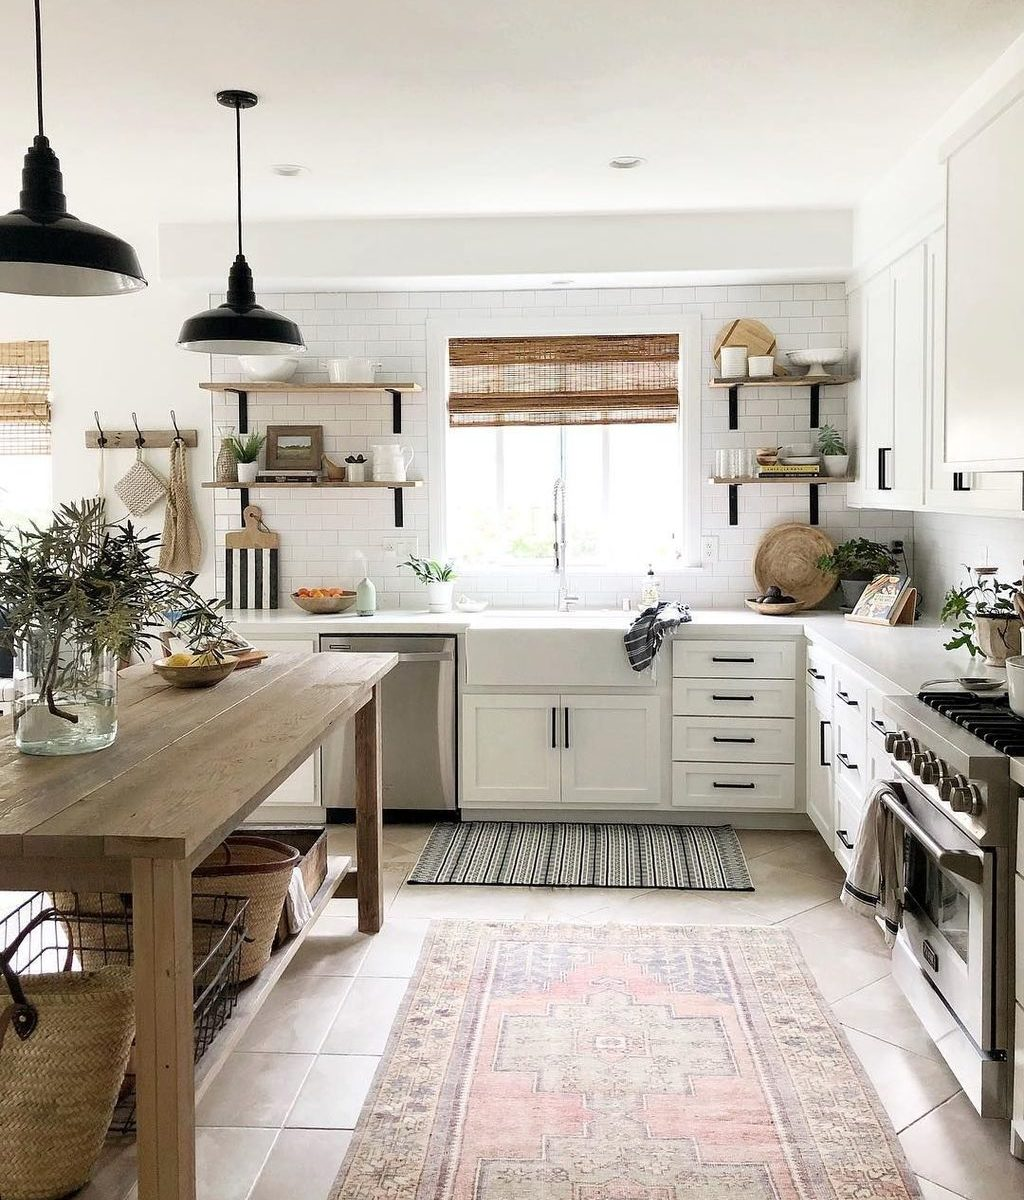 Inspiring Country Kitchen Decor Ideas You Should Copy 27